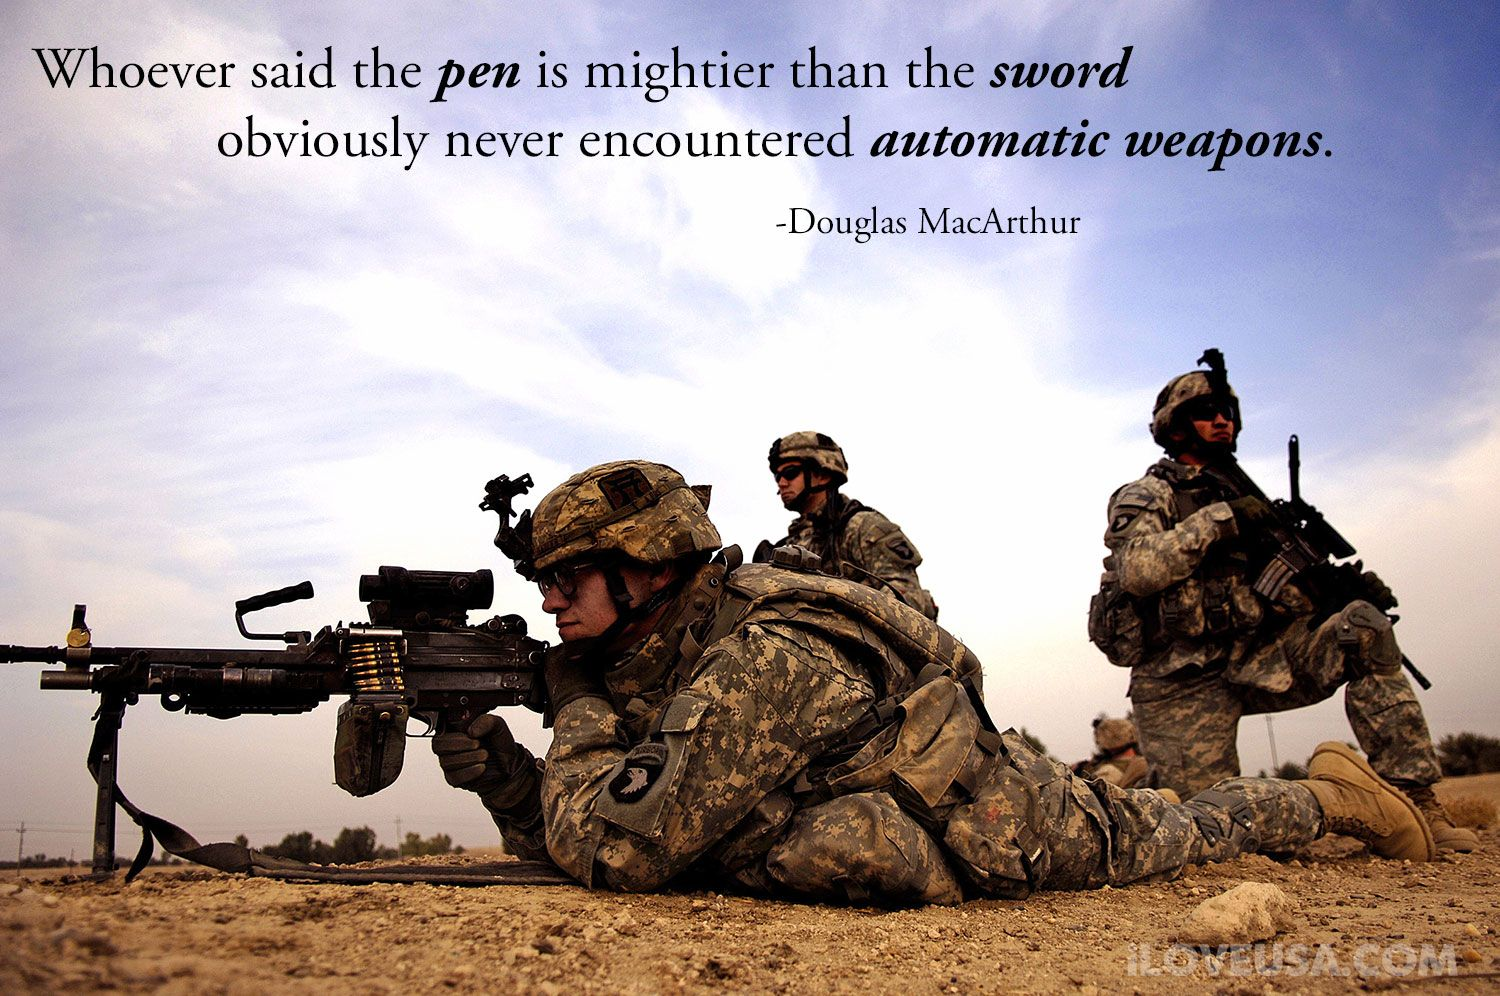 whoever said the pen is mightier than the sword obviously never whoever said the pen is mightier than the sword obviously never encountered automatic weapons